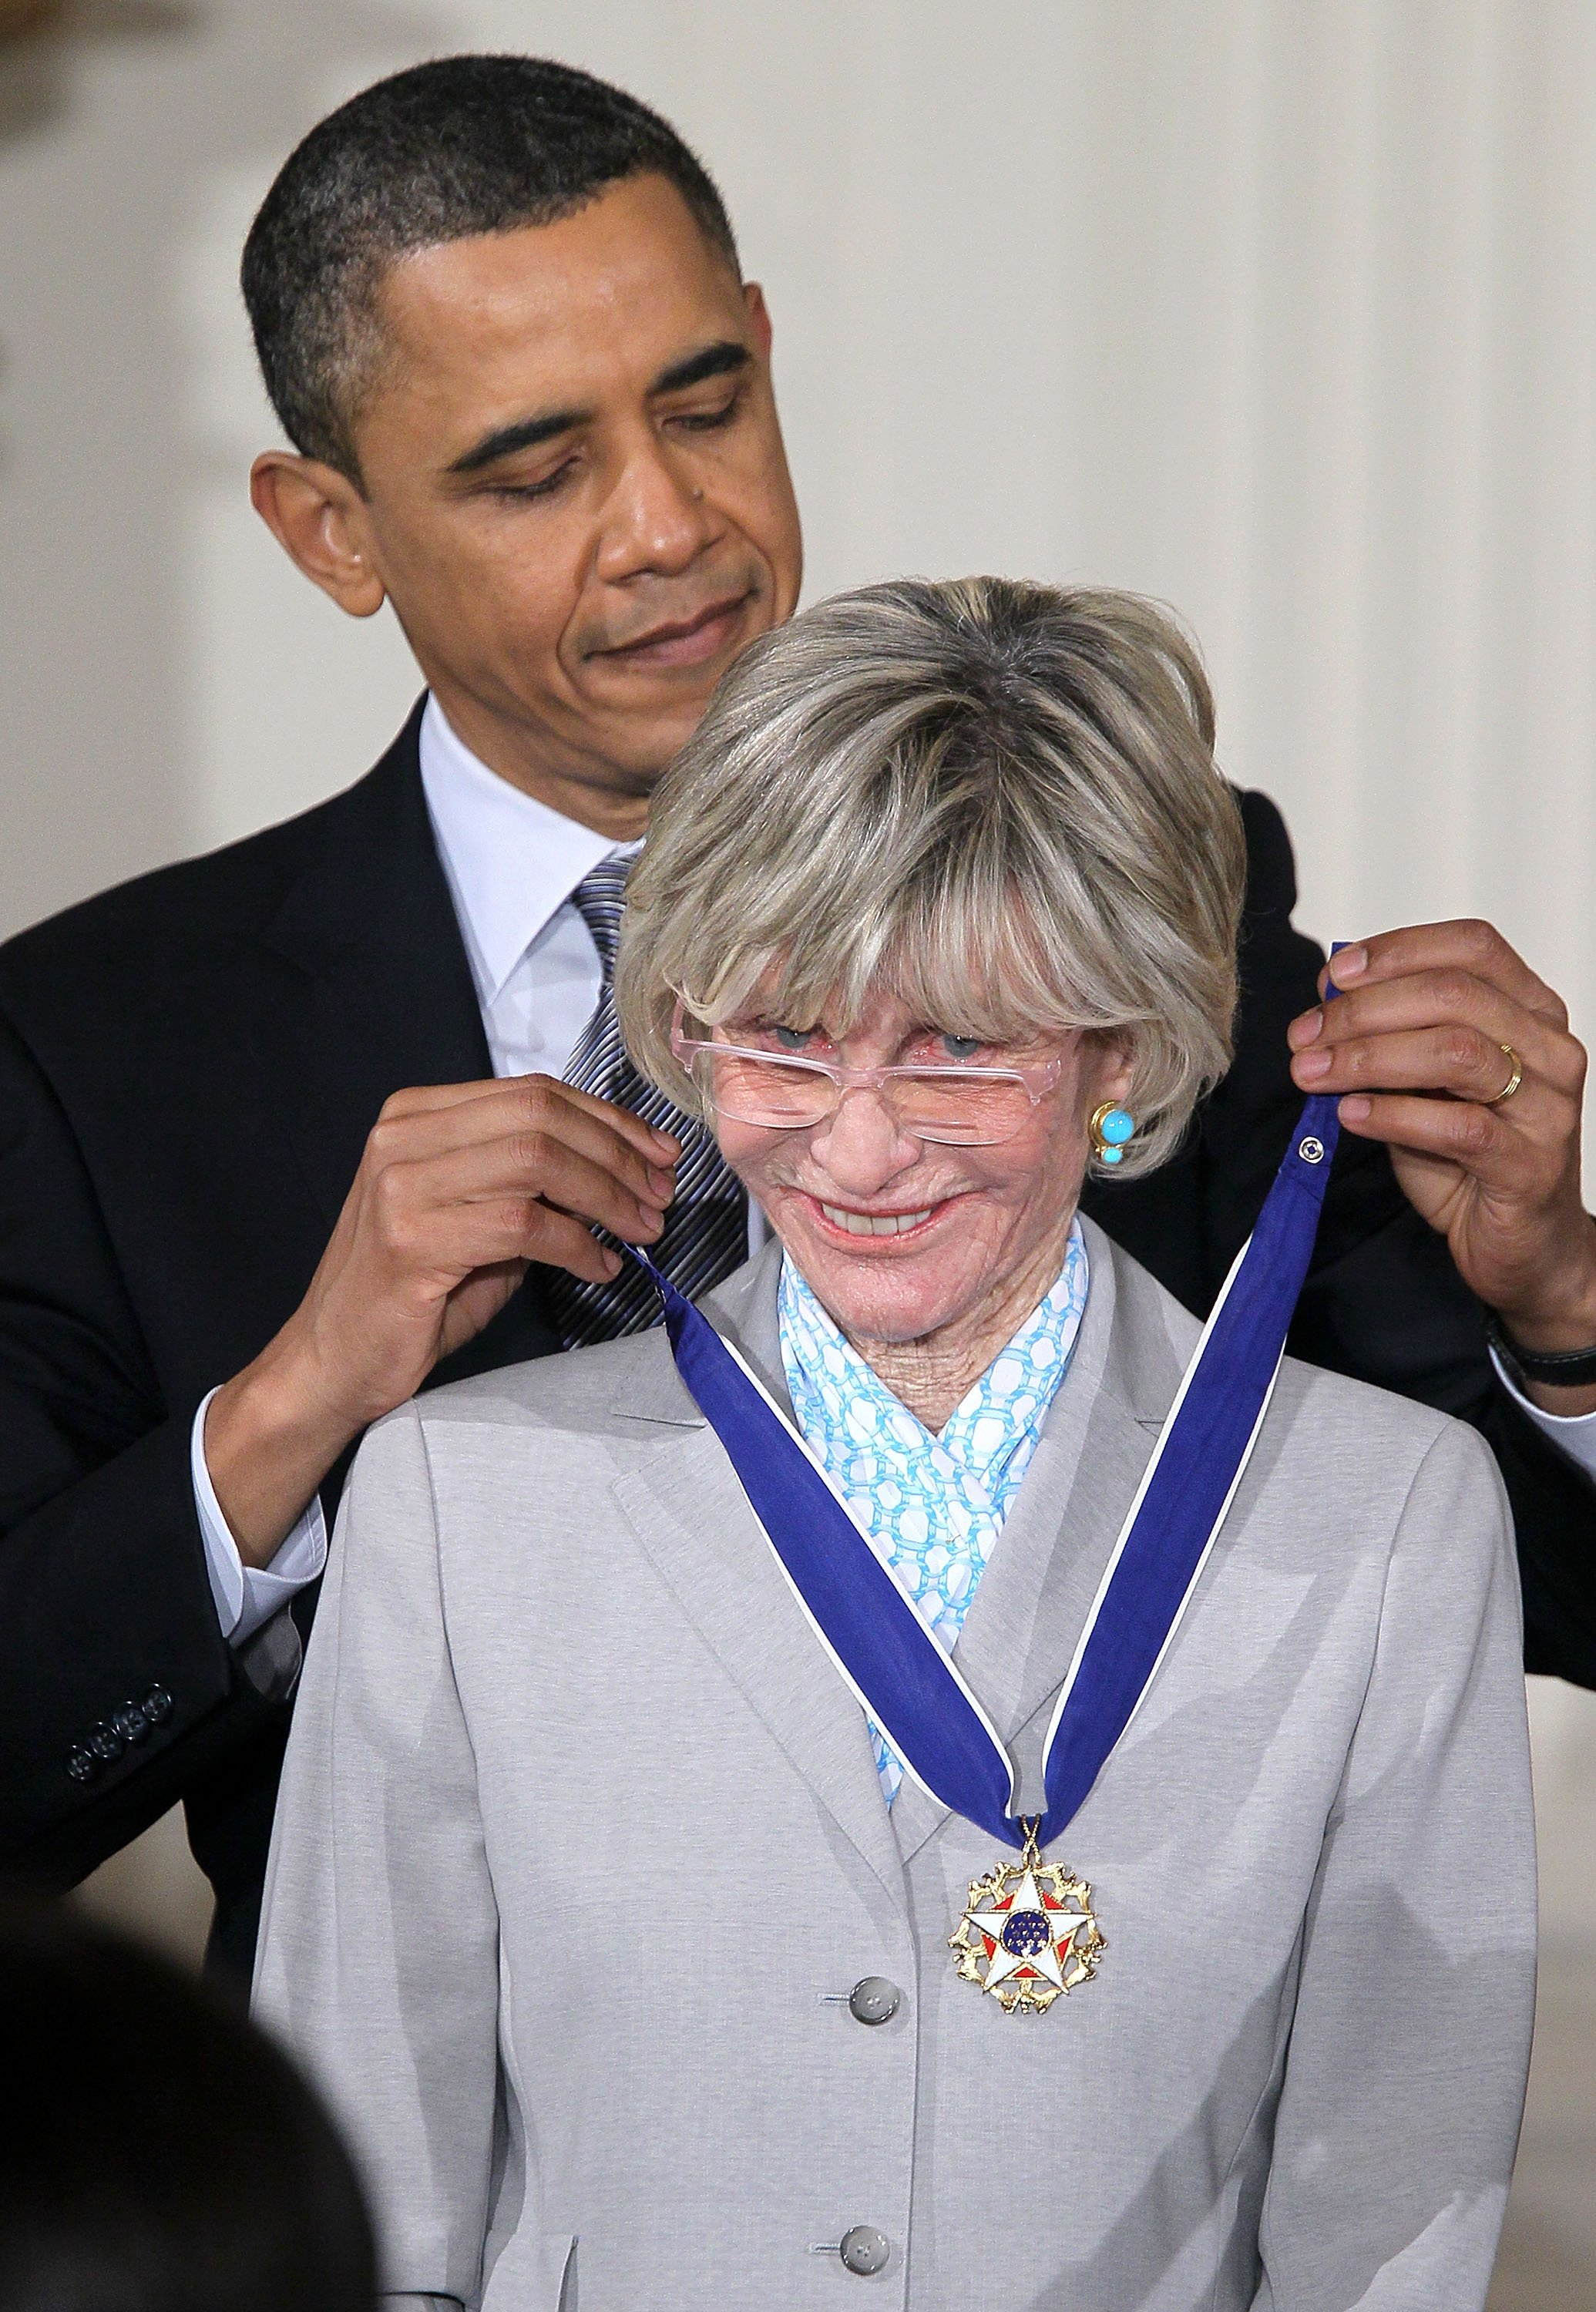 ean Kennedy Smith is presented with the 2010 Medal of Freedom by U.S. President Barack Obama in the White House on  February 15, 2011 | Photo: Getty Images